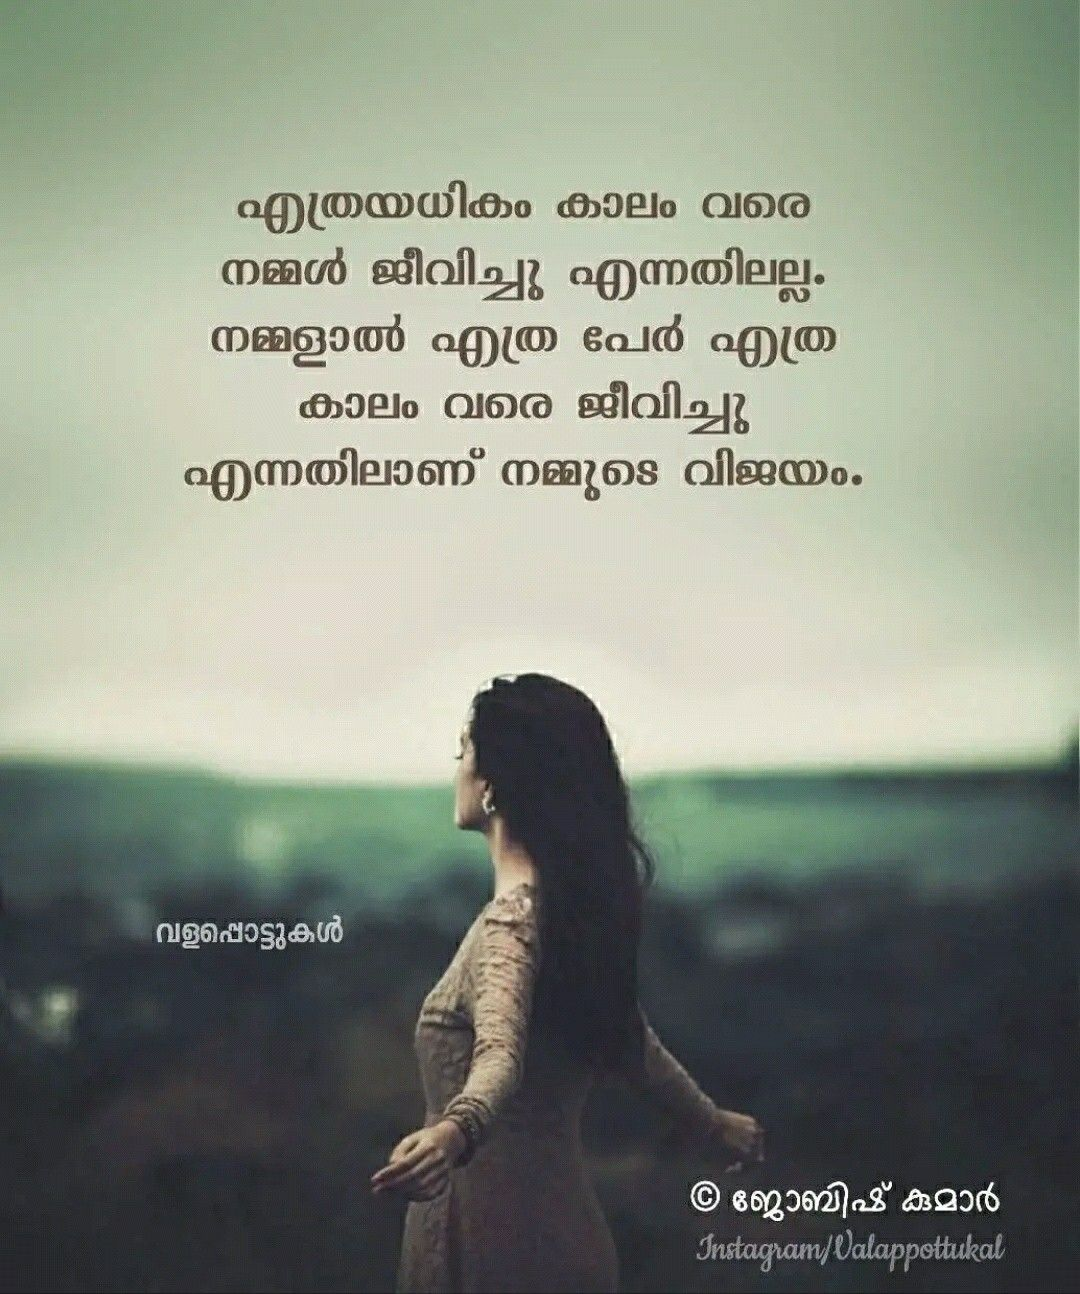 Pin by Lakshmi on മലയാളം Instagram, Malayalam quotes, Poster